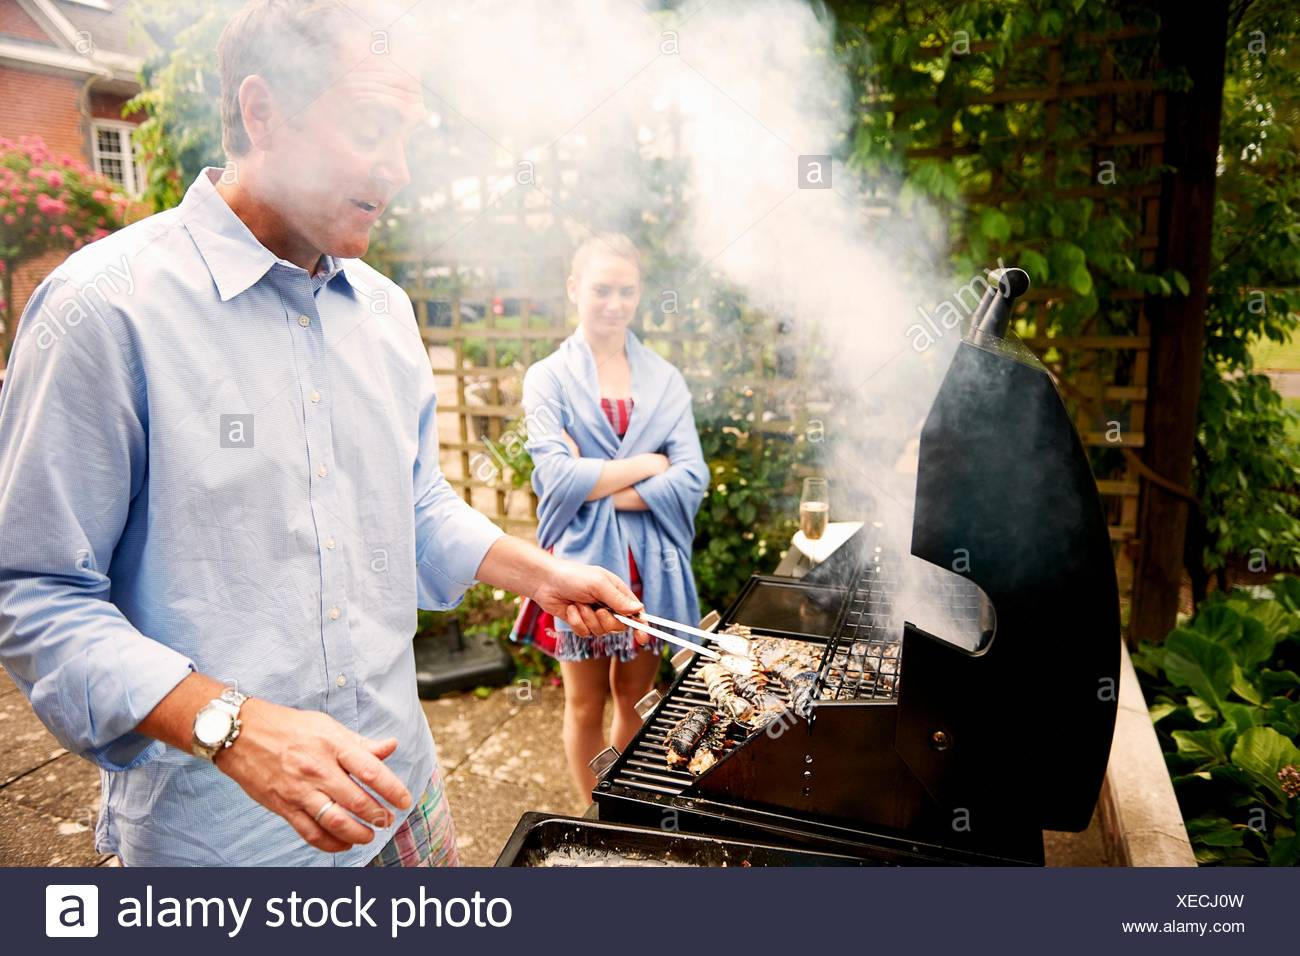 Daughter watching father cook sea food on barbecue - Stock Image